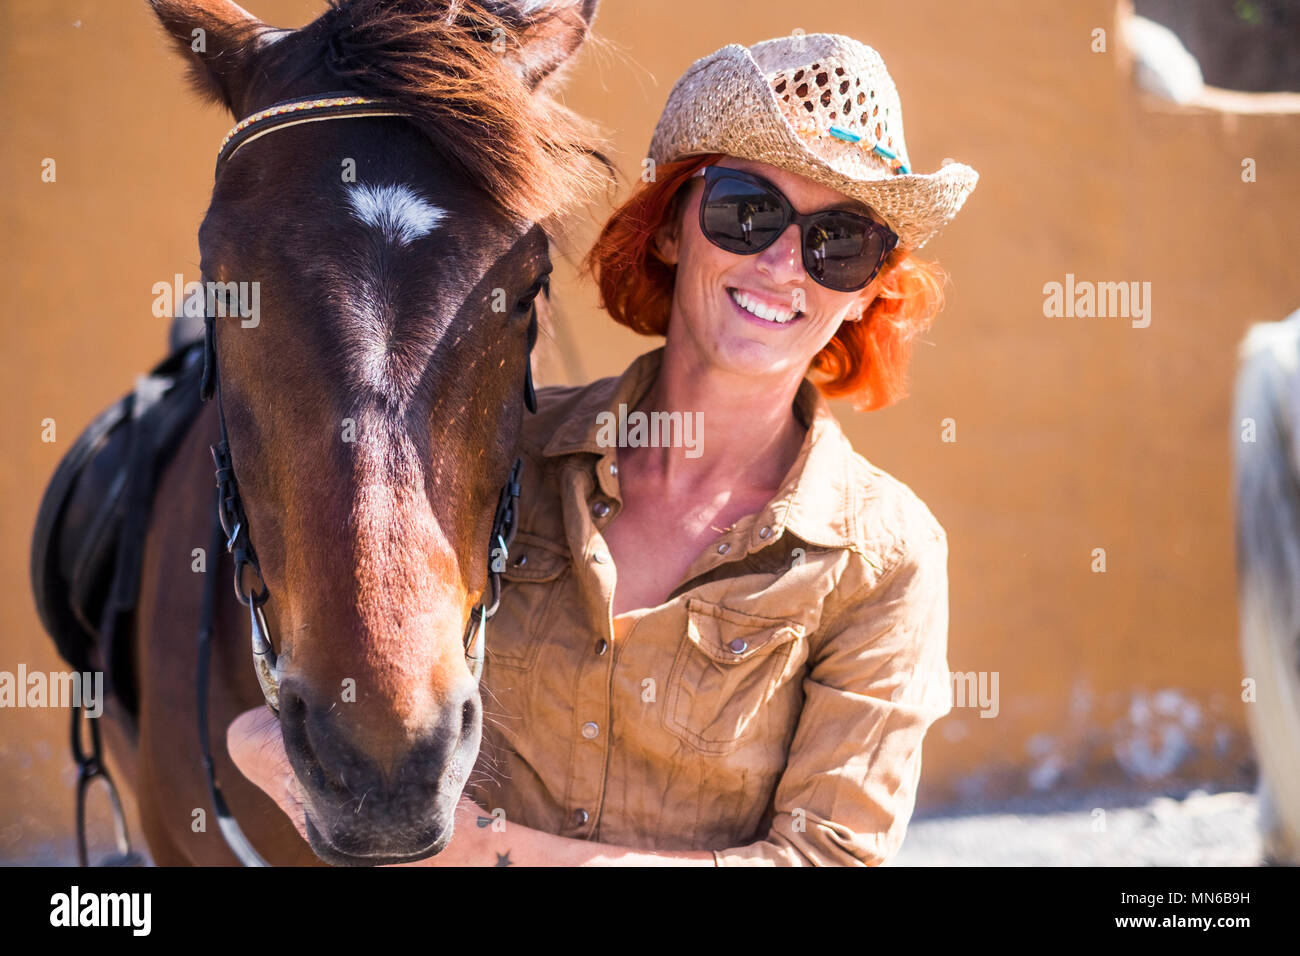 smiled beautiful girl red hair and cowboy hat with her best friend horse in friendship ready to live another adventure outdoor in leisure activity und - Stock Image